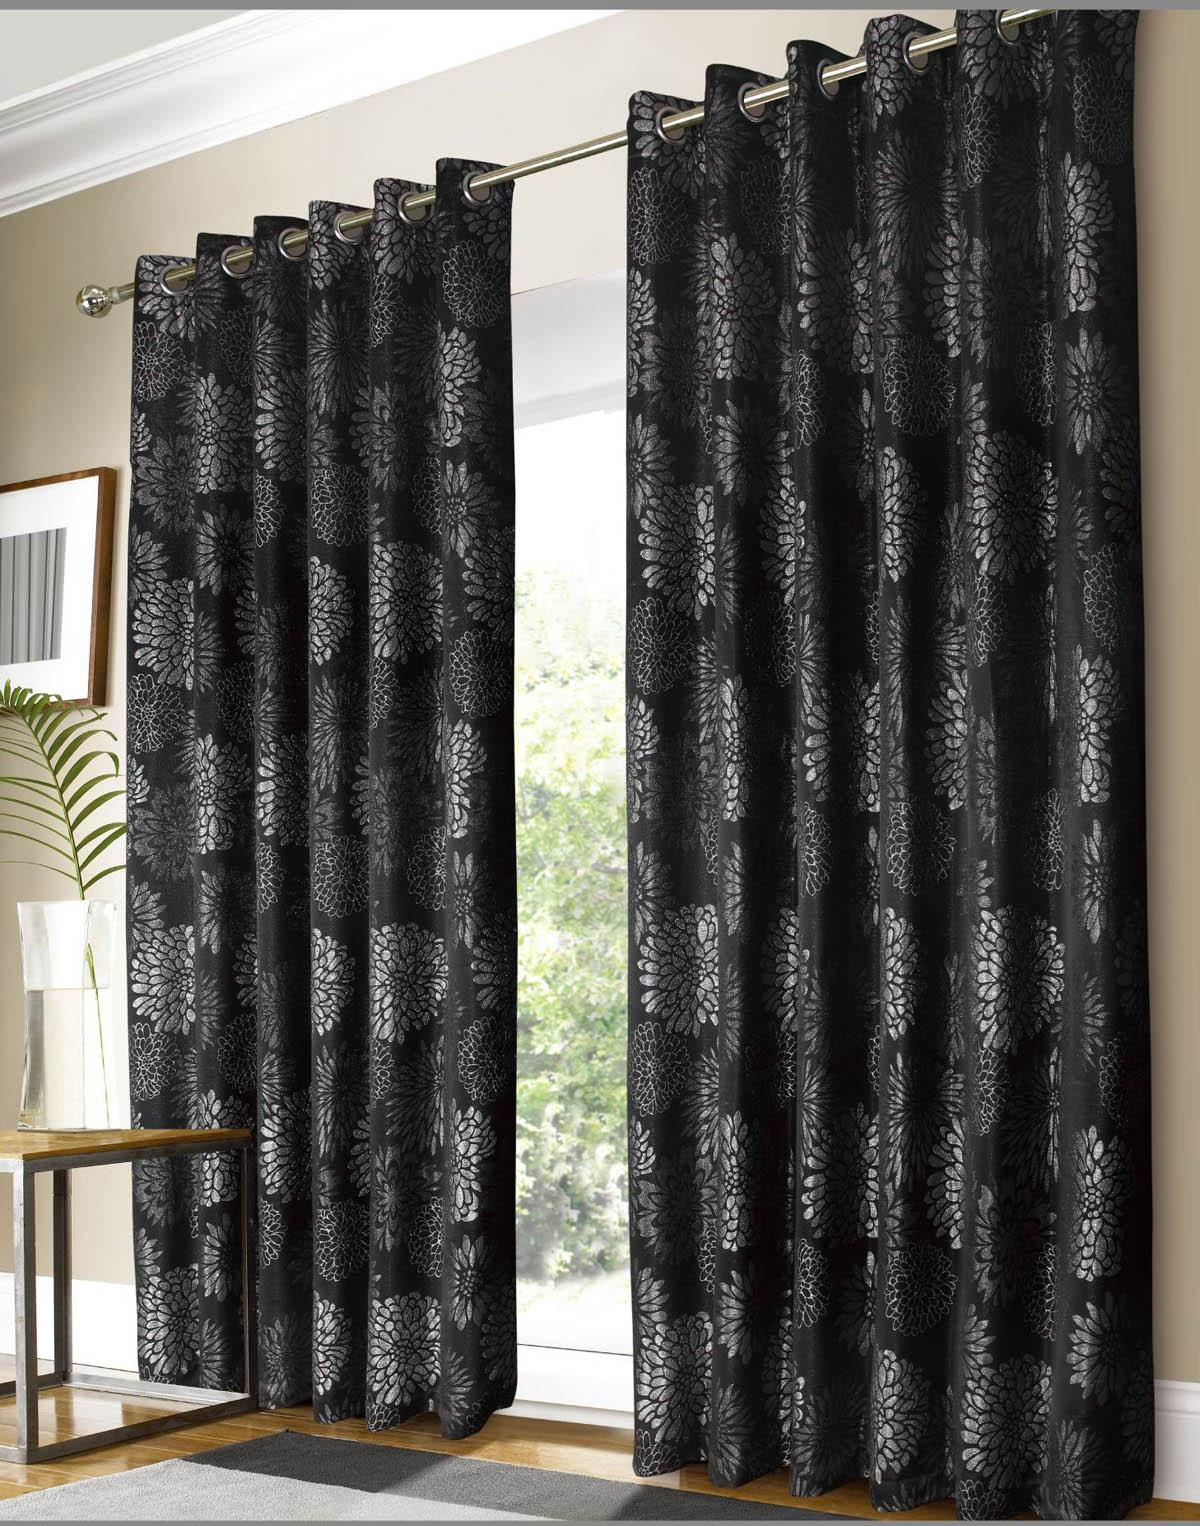 Luxury Black and Silver Curtains Images black and silver curtains